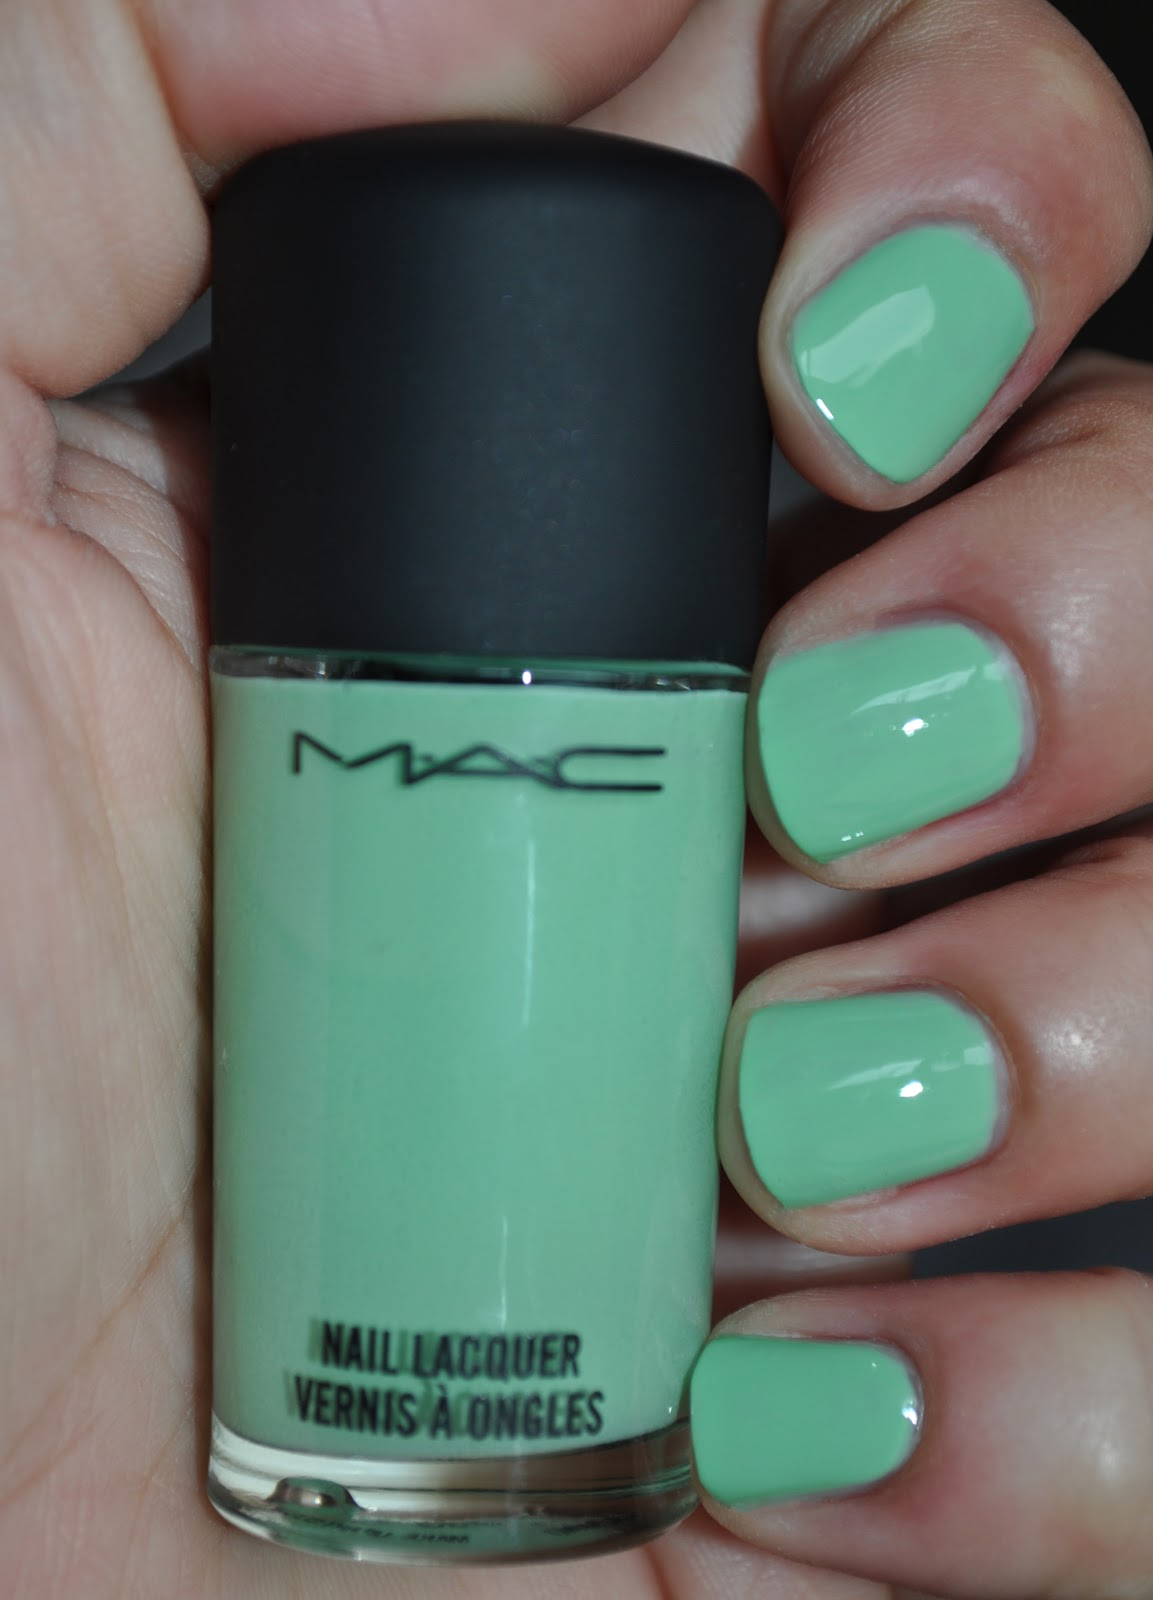 So Lonely in Gorgeous: Pat Me A Mani As Fast As You Can!